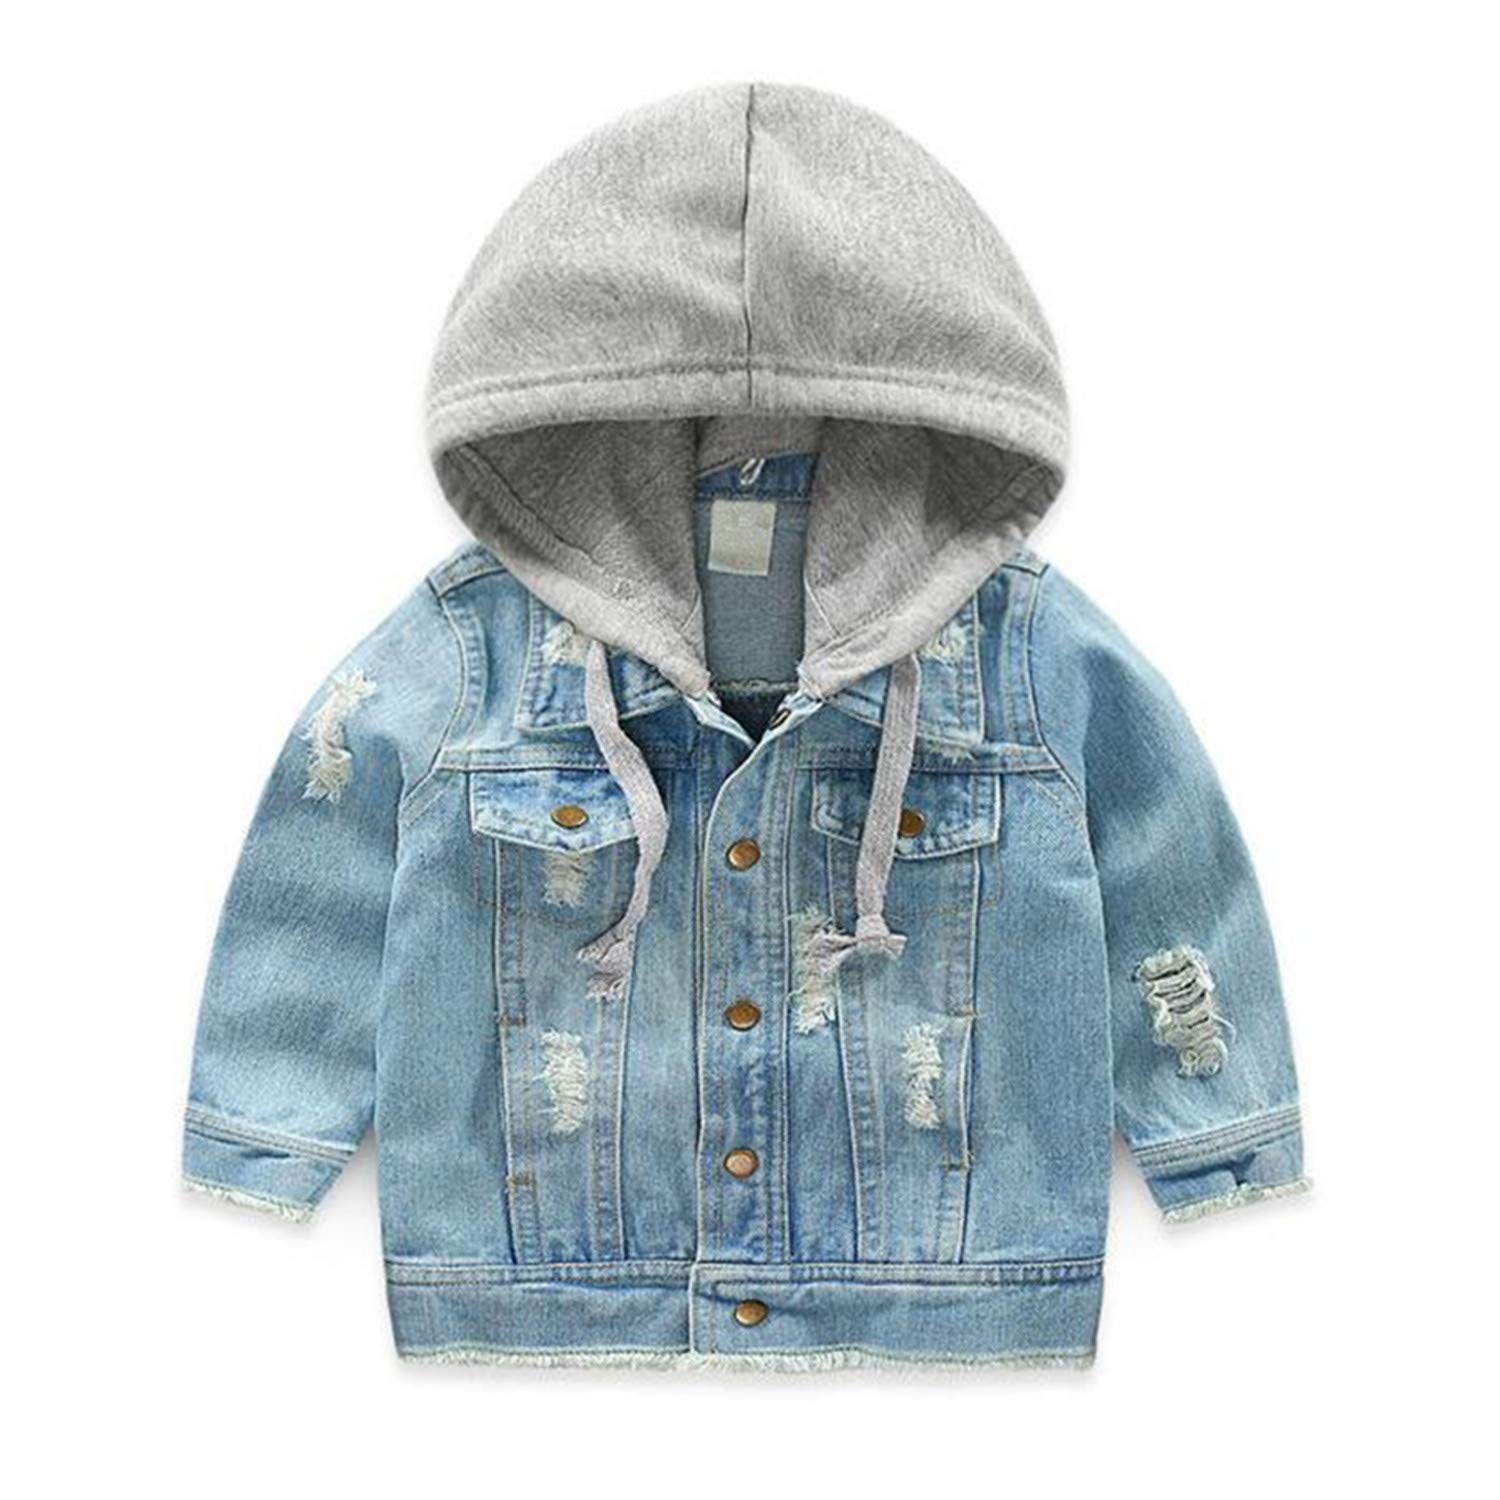 b69db5a1a1c8 Amazon.com  Vintage Girls Jeans Jacket for Baby Boys Hooded Denim ...